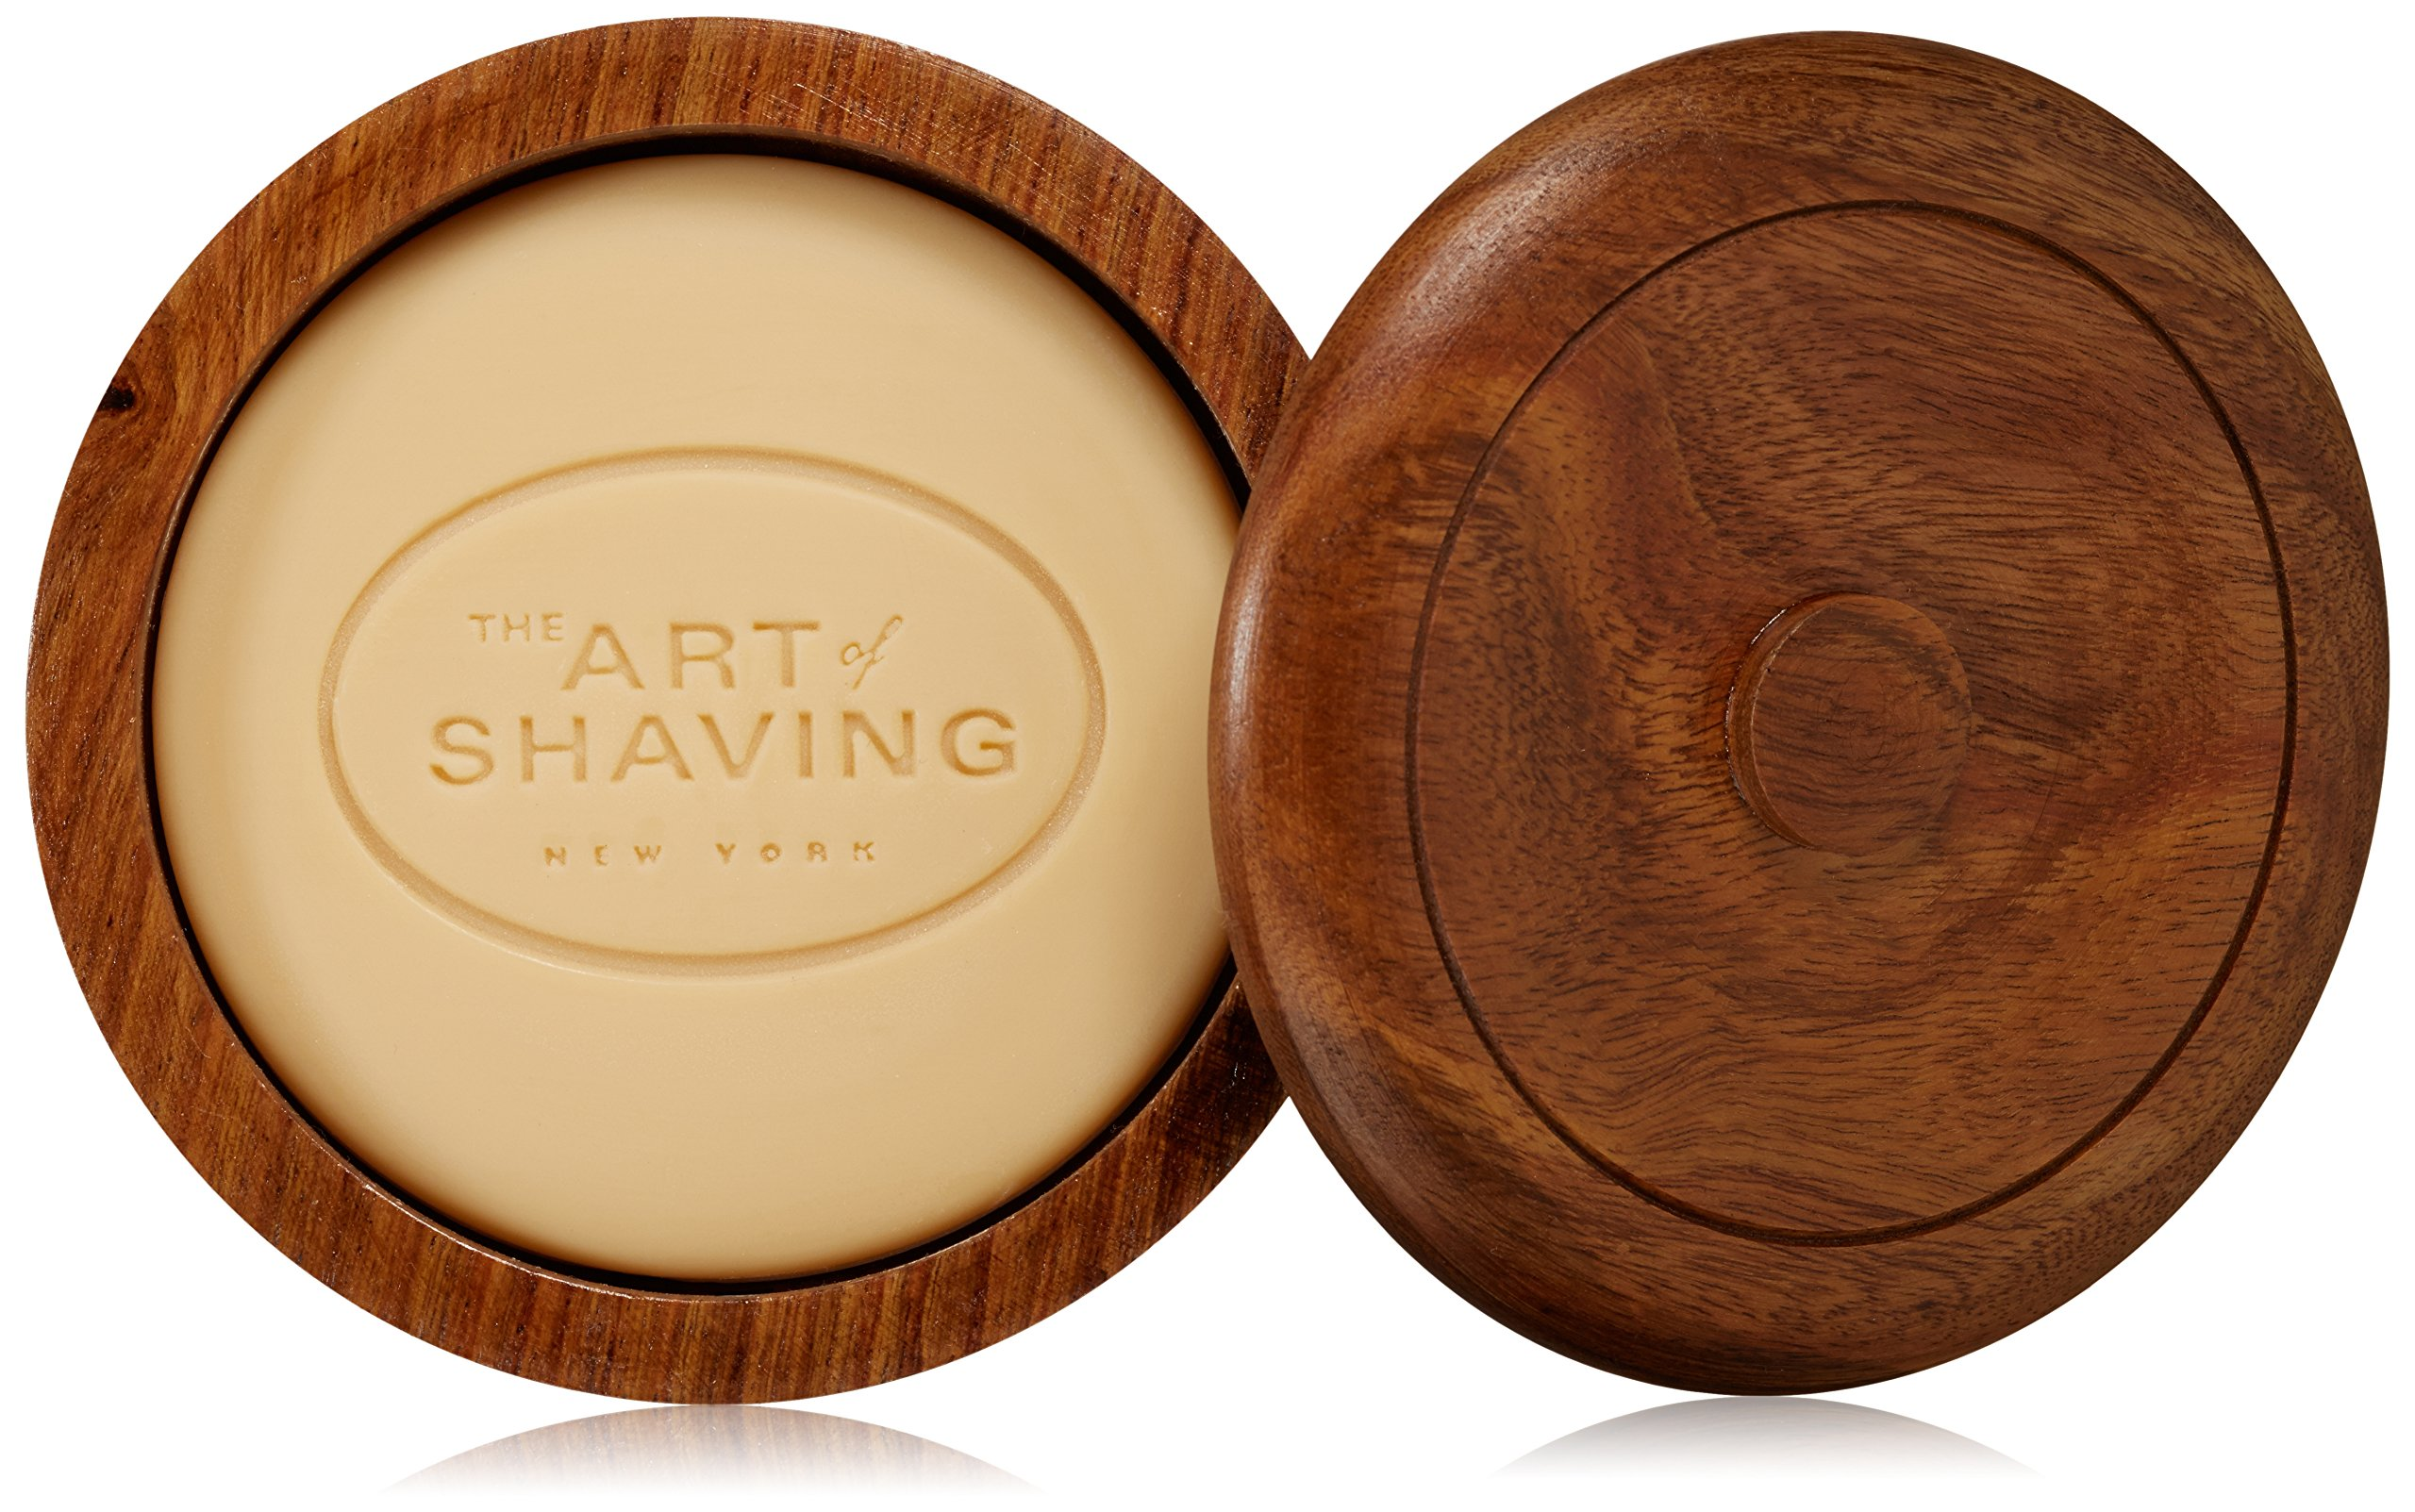 The Art of Shaving TAOS Soap with Bowl, Lavender, 3.3 oz.